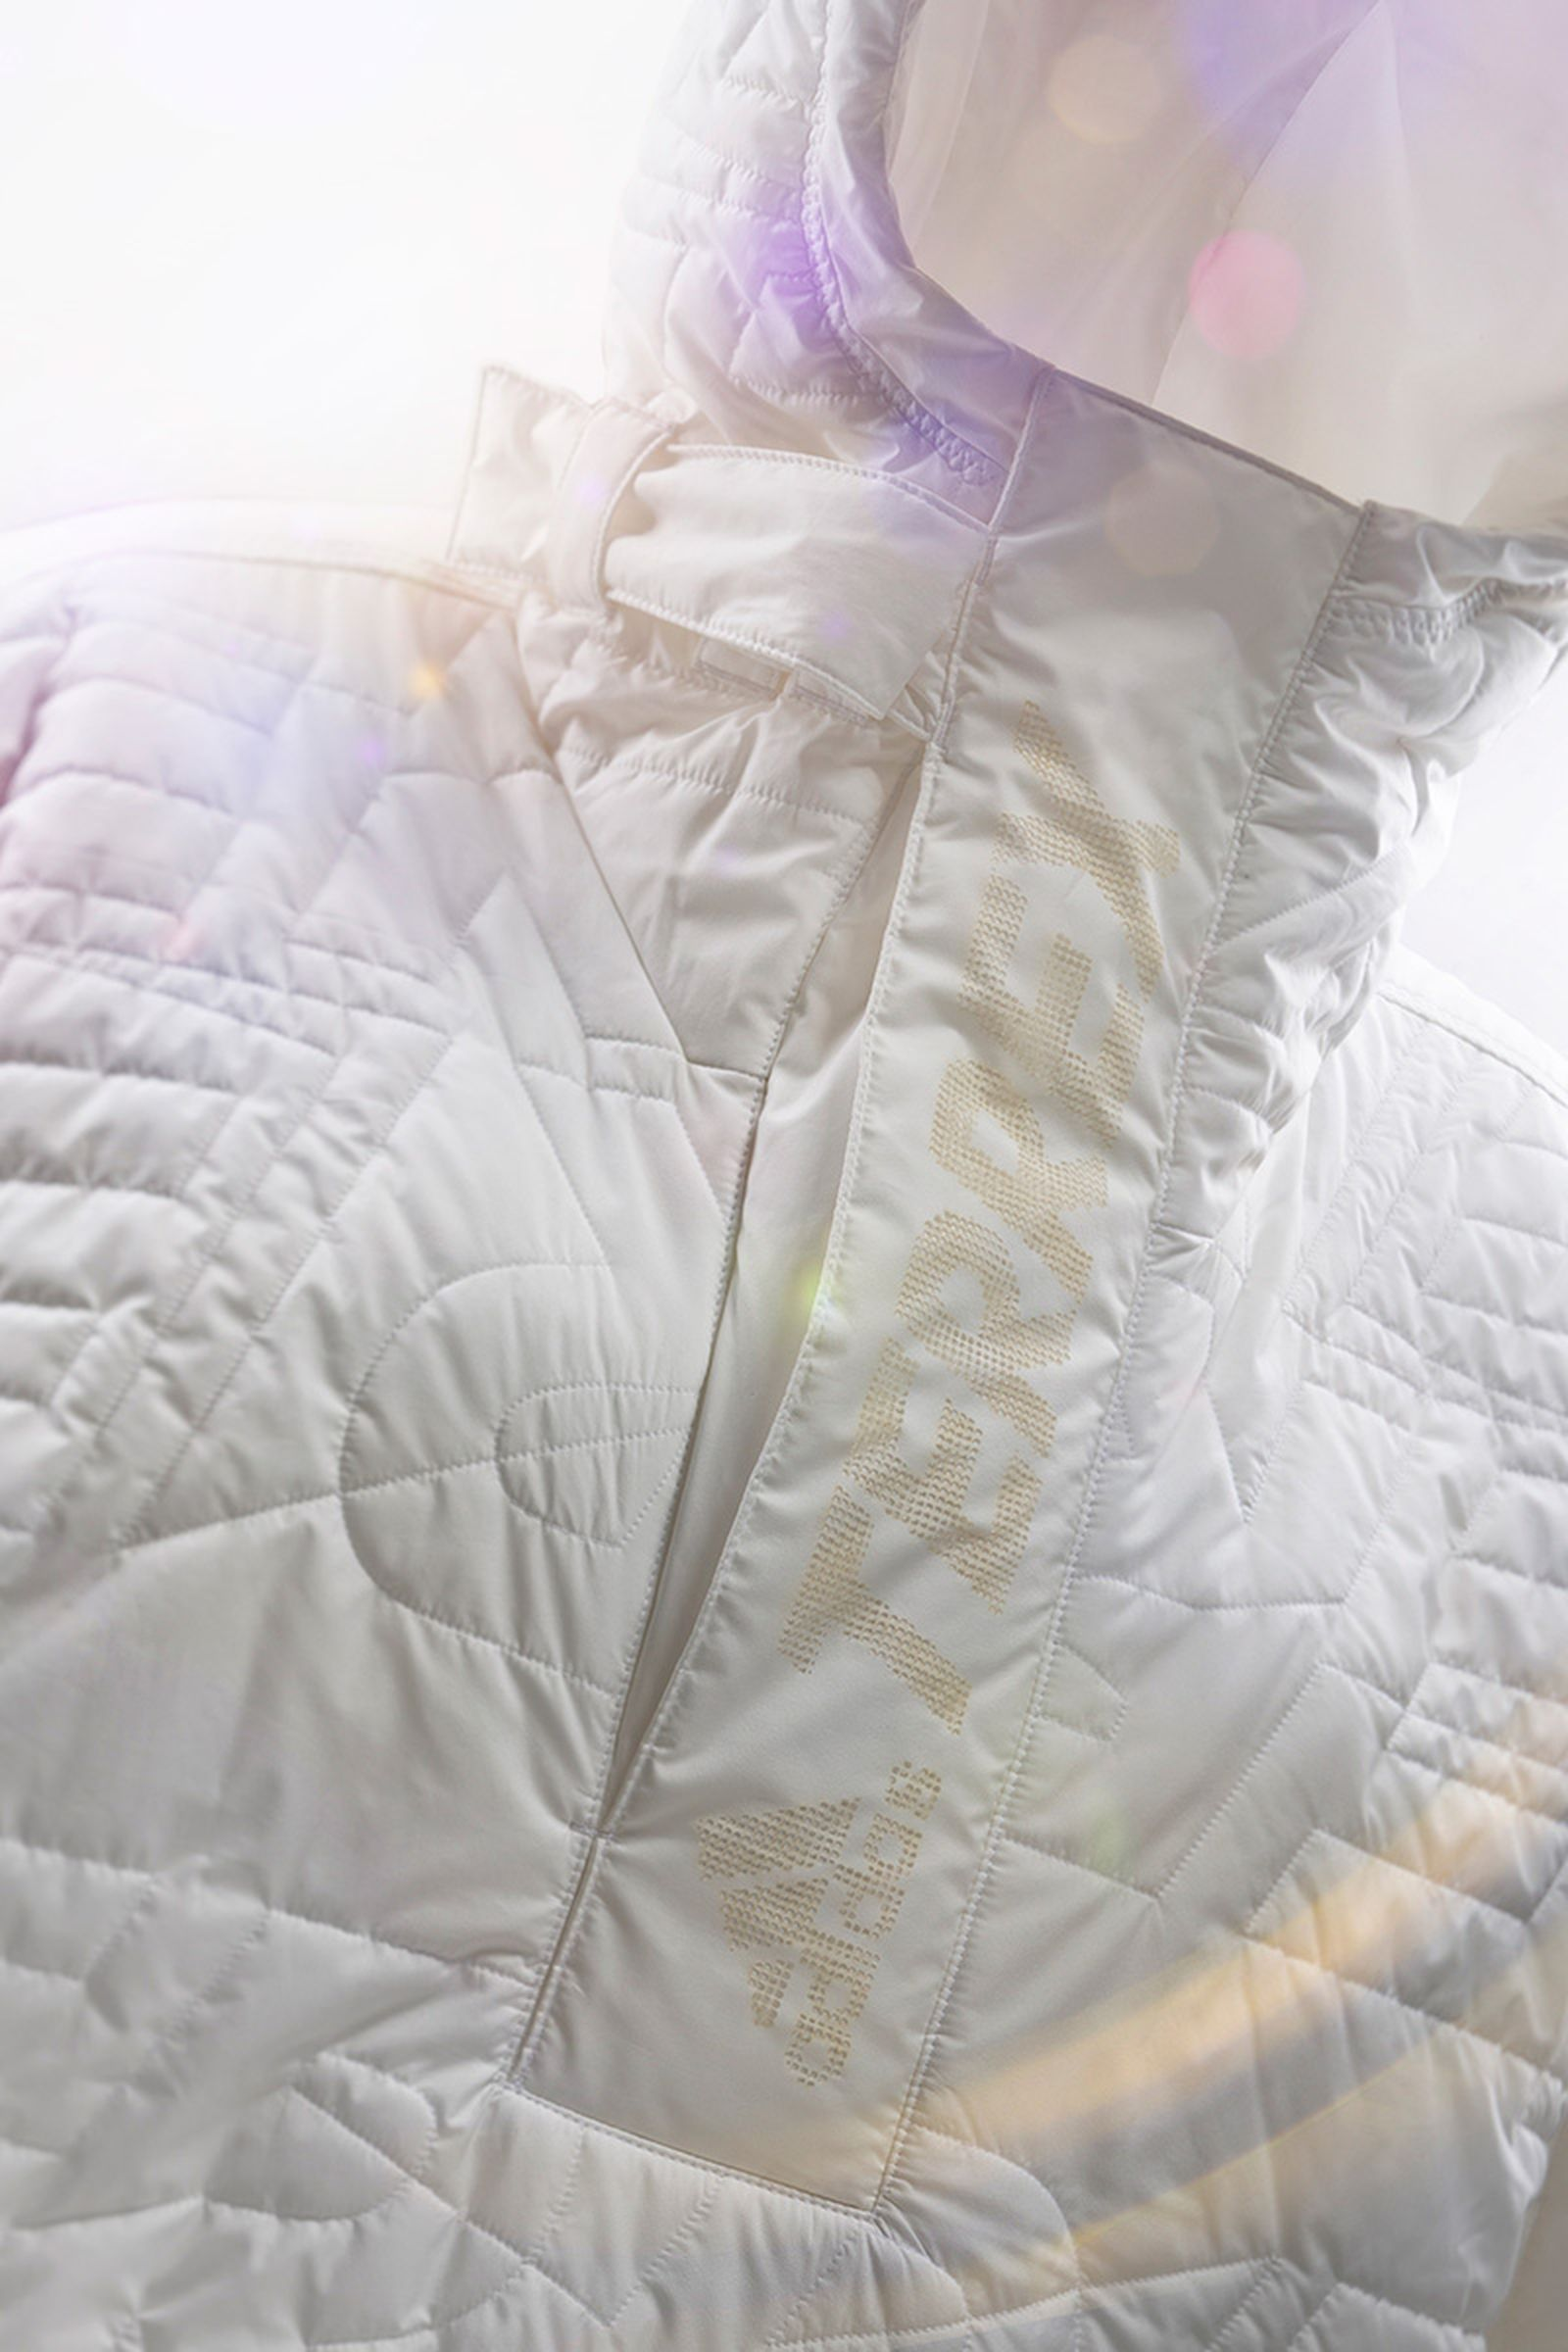 adidas-futurecraft-loop-anorak-will-change-the-way-you-look-at-jackets-03